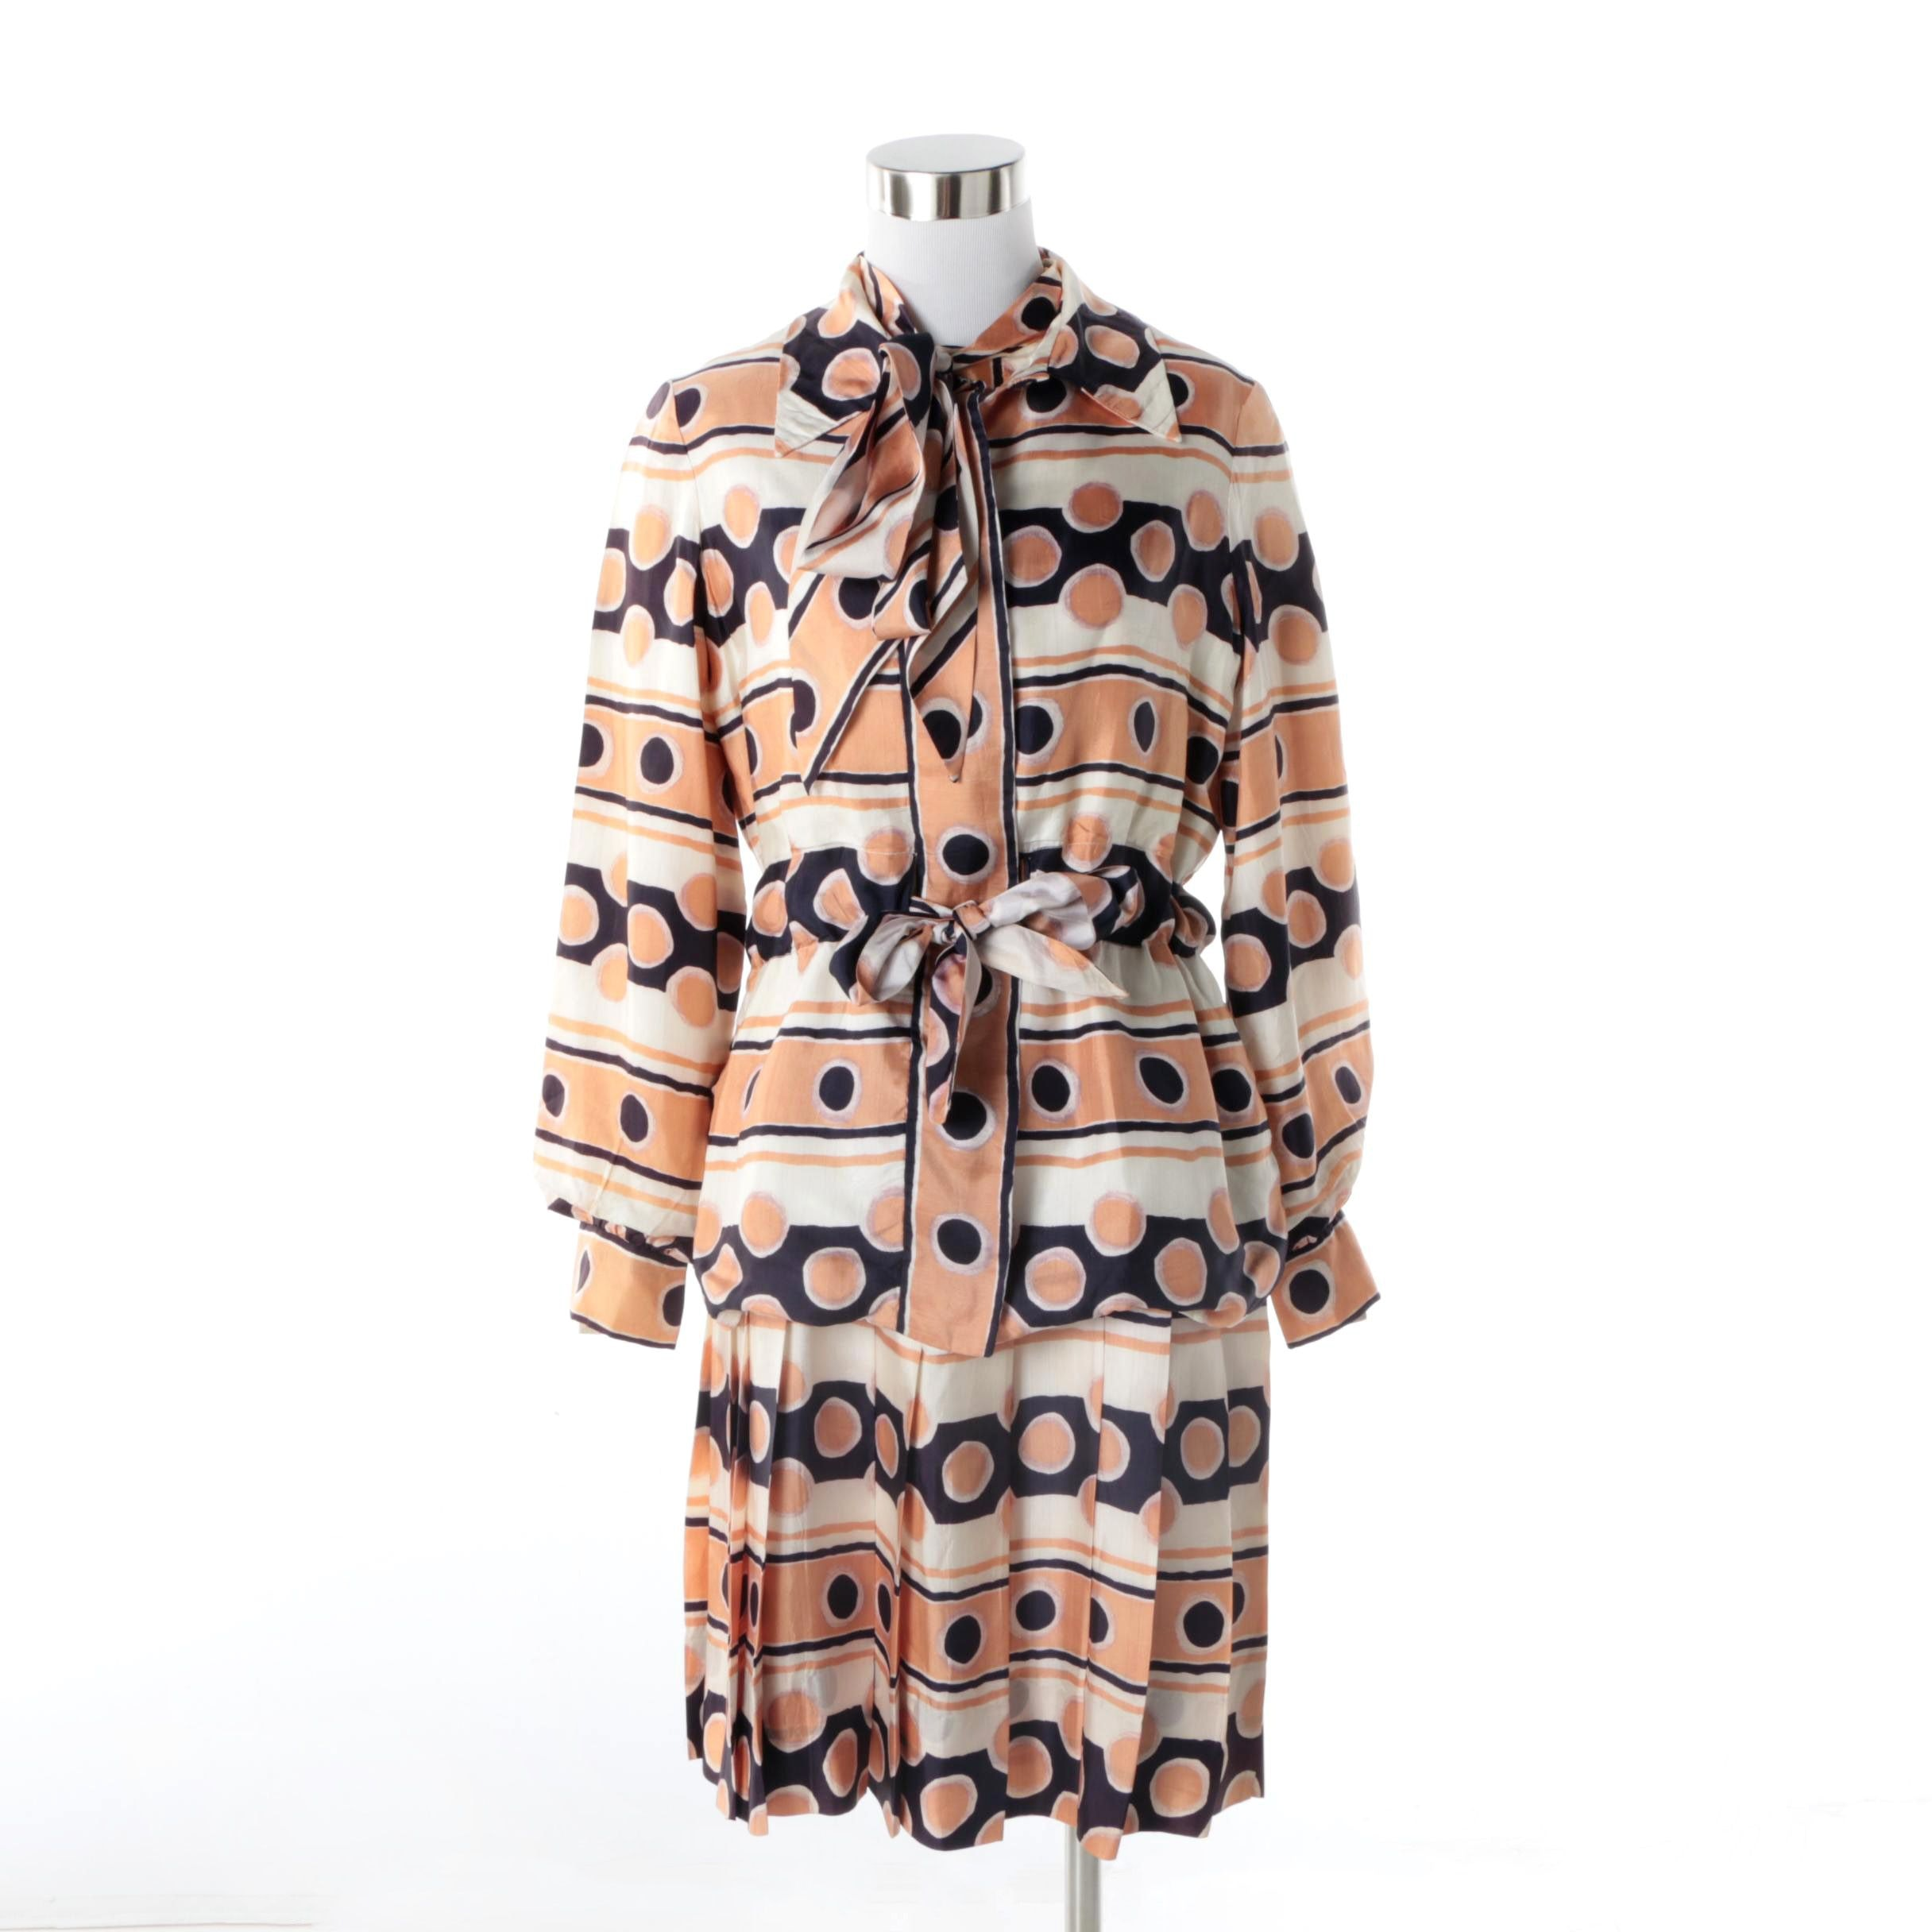 1970s Vintage Oscar de la Renta Mod Print Dress and Matching Jacket